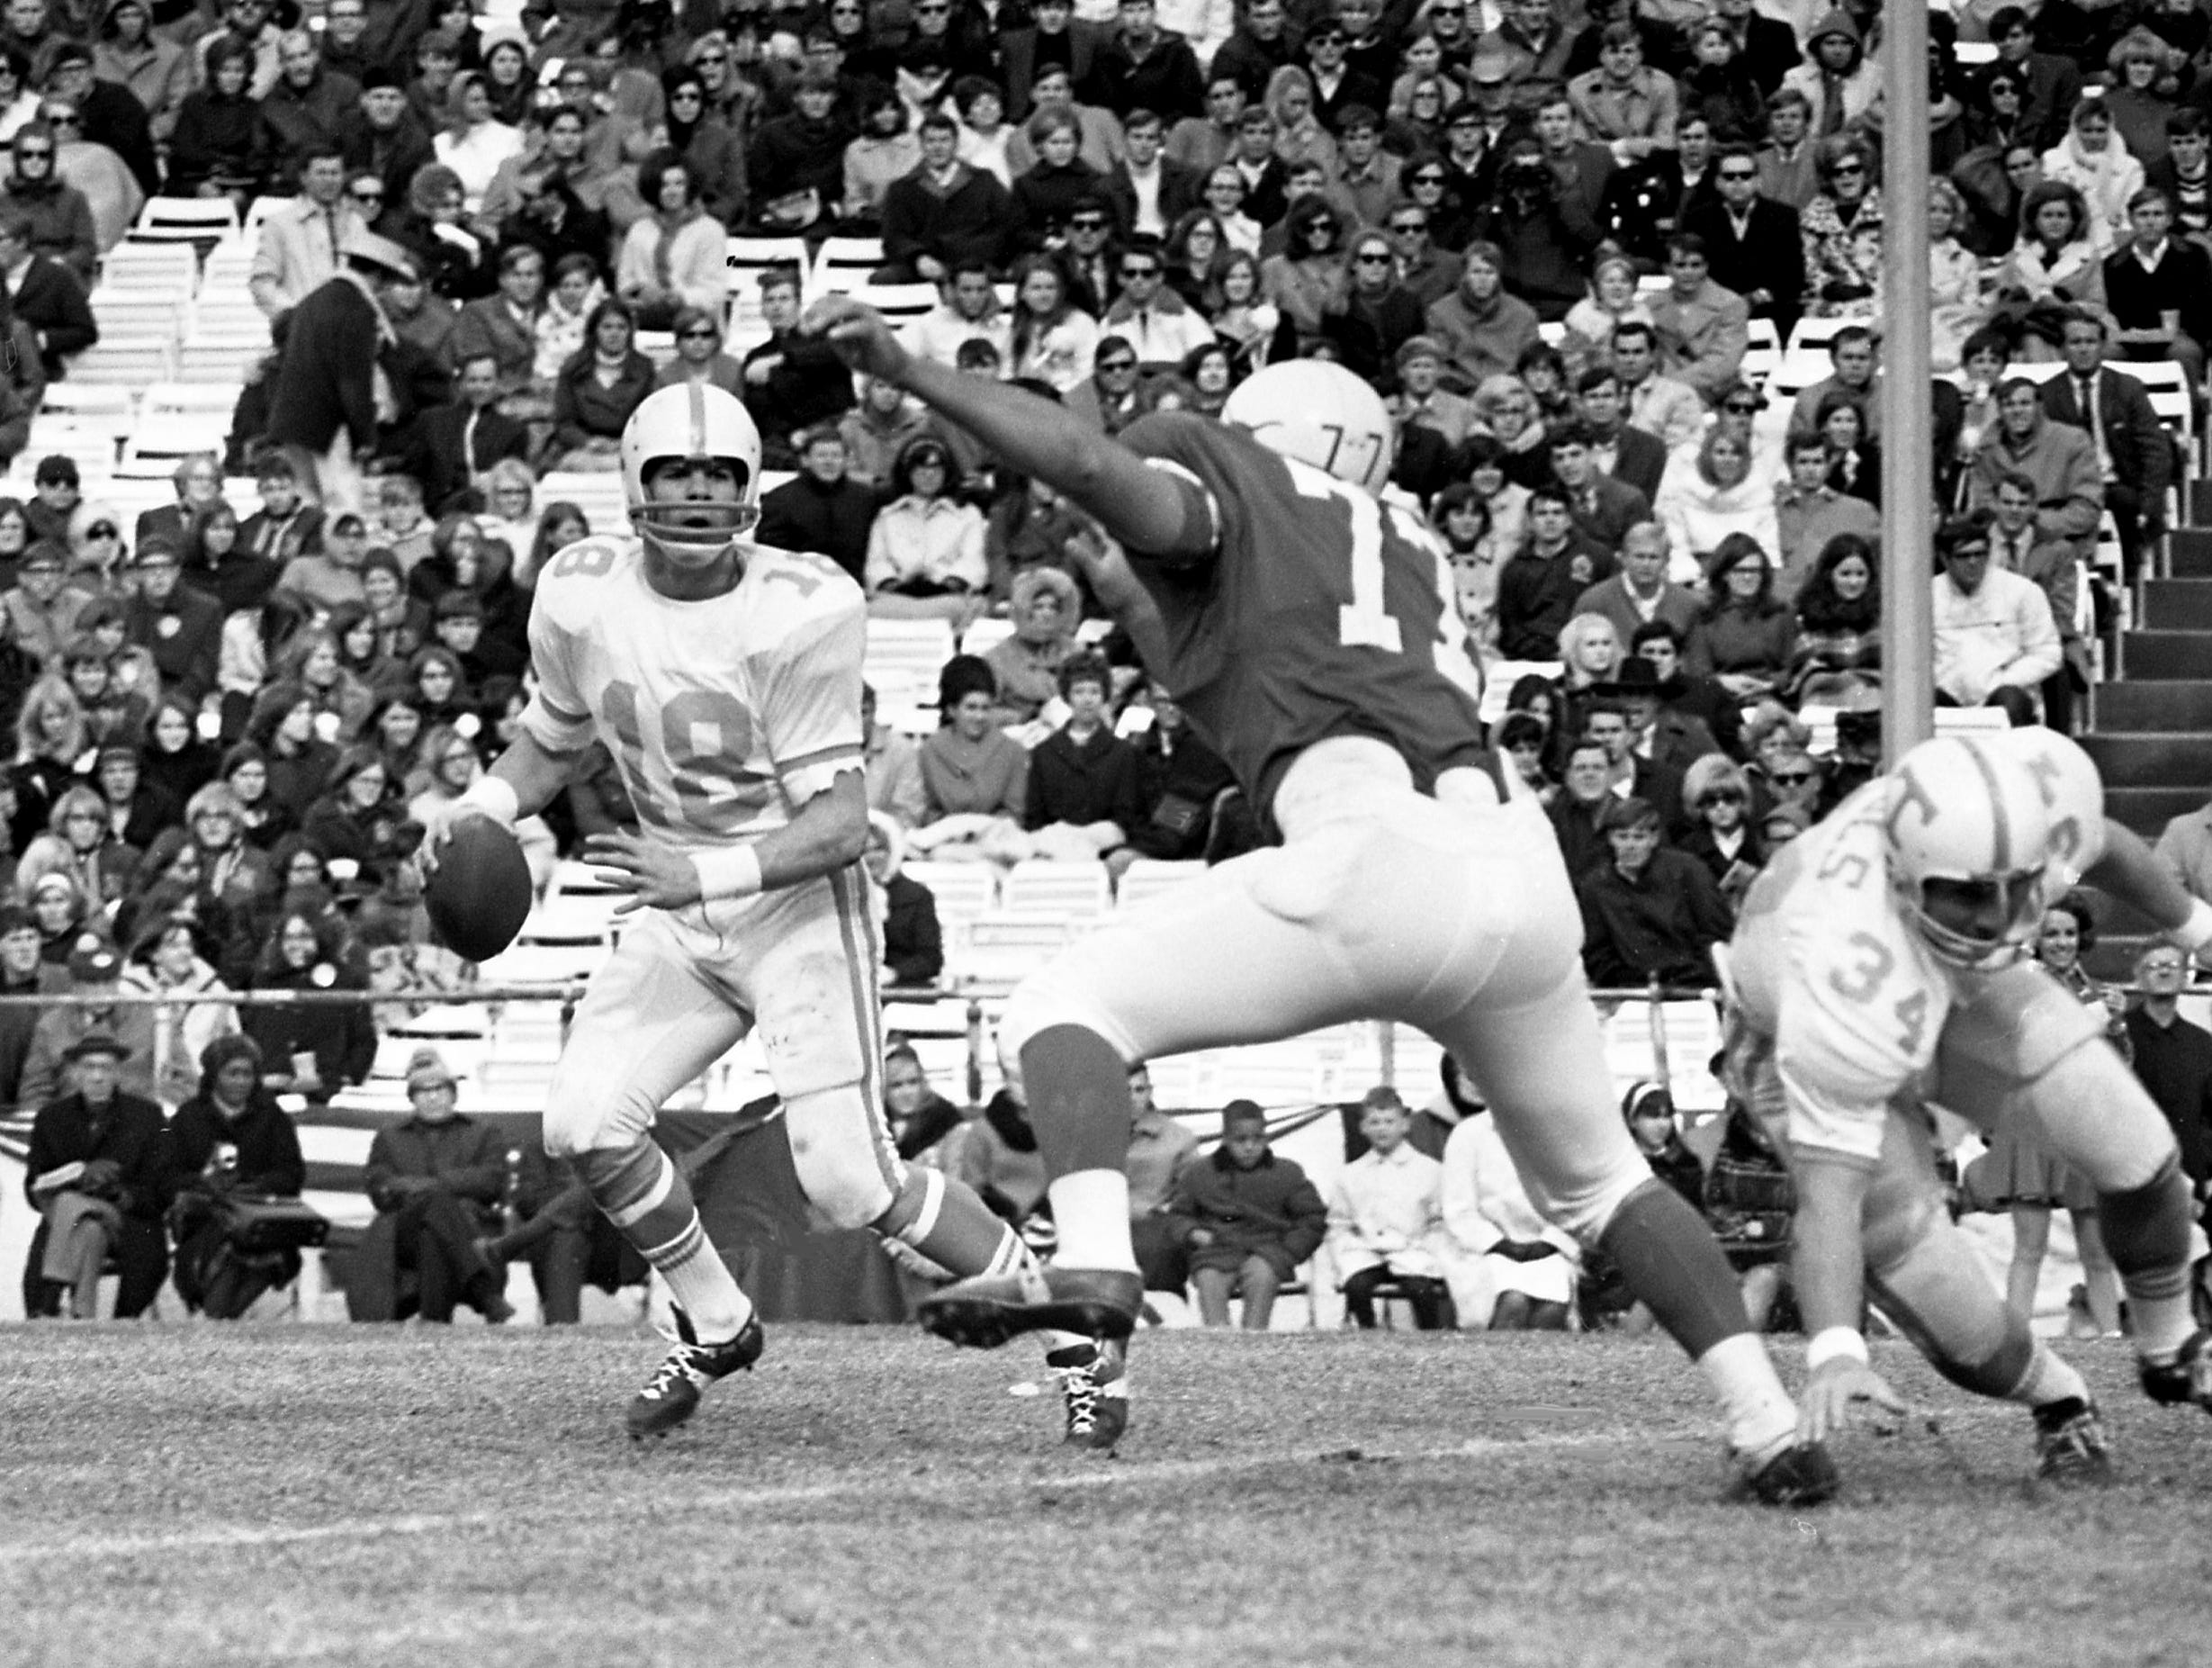 Tennessee quarterback Bubba Wyche (18) looks for a receiver while getting pressure from Texas defensive end Bill Atessis (77) during the Cotton Bowl on Jan. 1, 1969, in Dallas. Tennessee was gored 36-13 by the Longhorns before 72,000 in the 33rd annual New Year's Day classic.